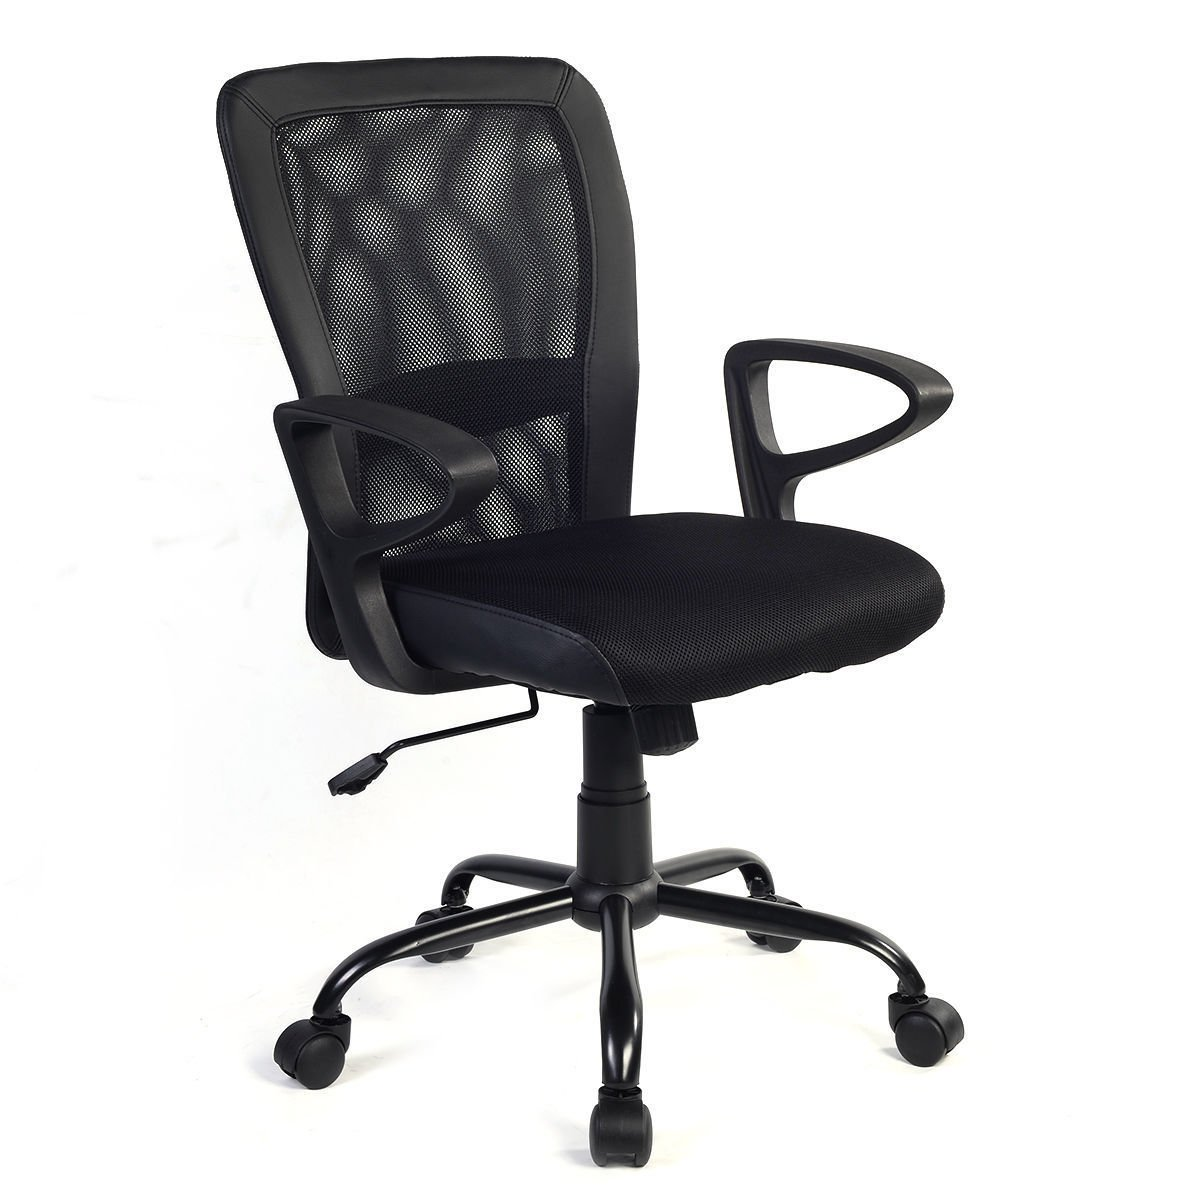 Giantex Mesh Task Ergonomic Office Chair Chair Adjustable Height Padded Seat Mesh Leather Bonded Back Executive Computer Desk Chair w/Arms, Black